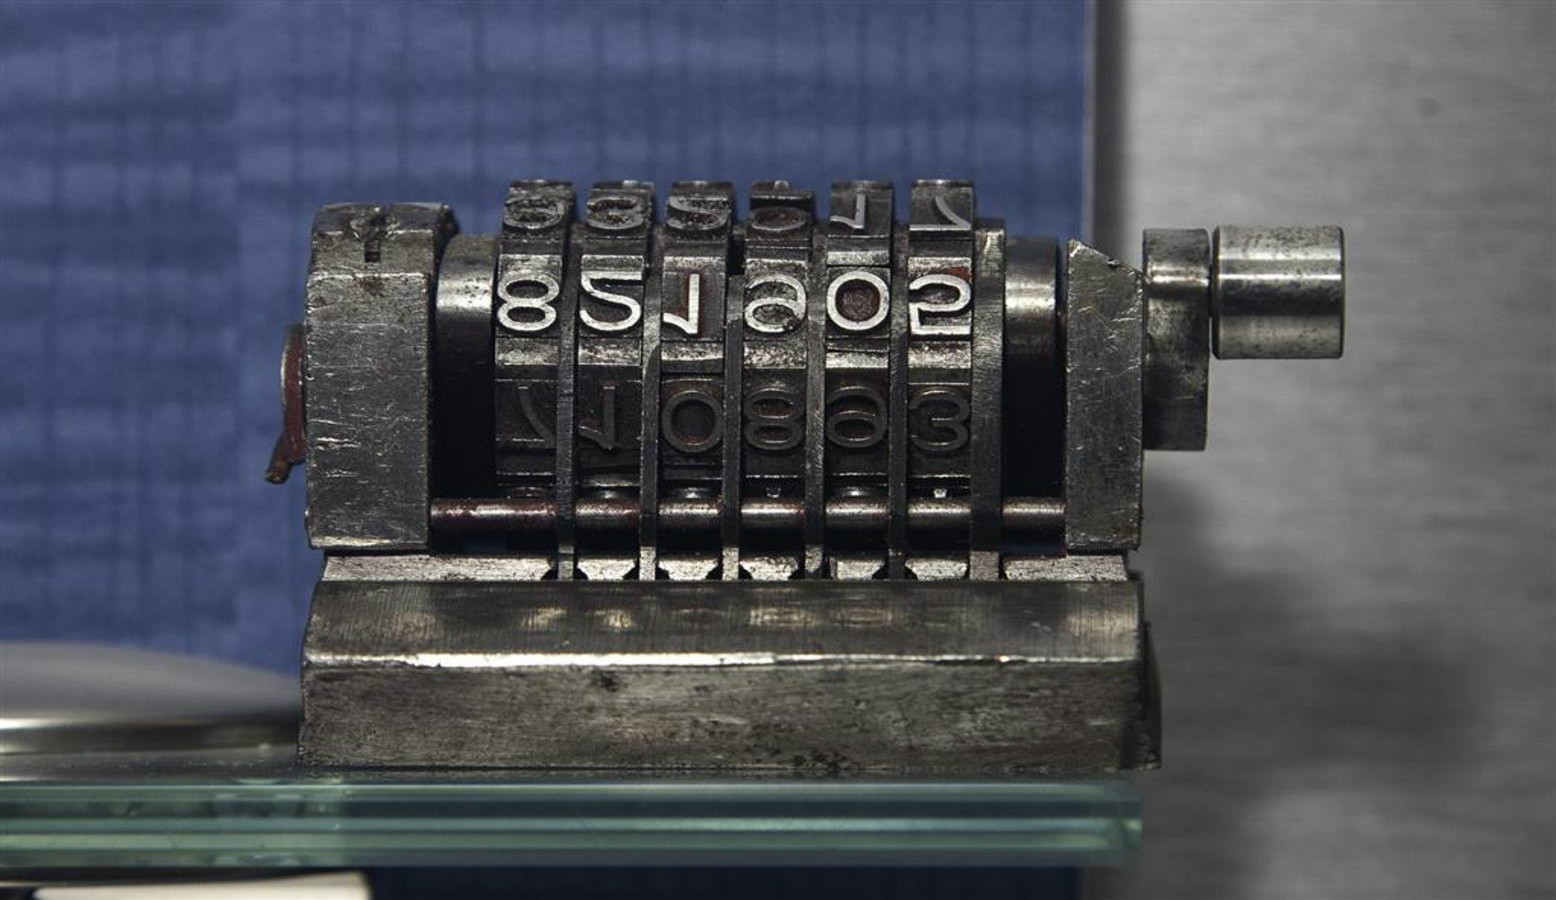 A steel numerator on display at MadaTech Israel National Museum of Science in Haifa. Photo by MadaTech Multimedia Studio